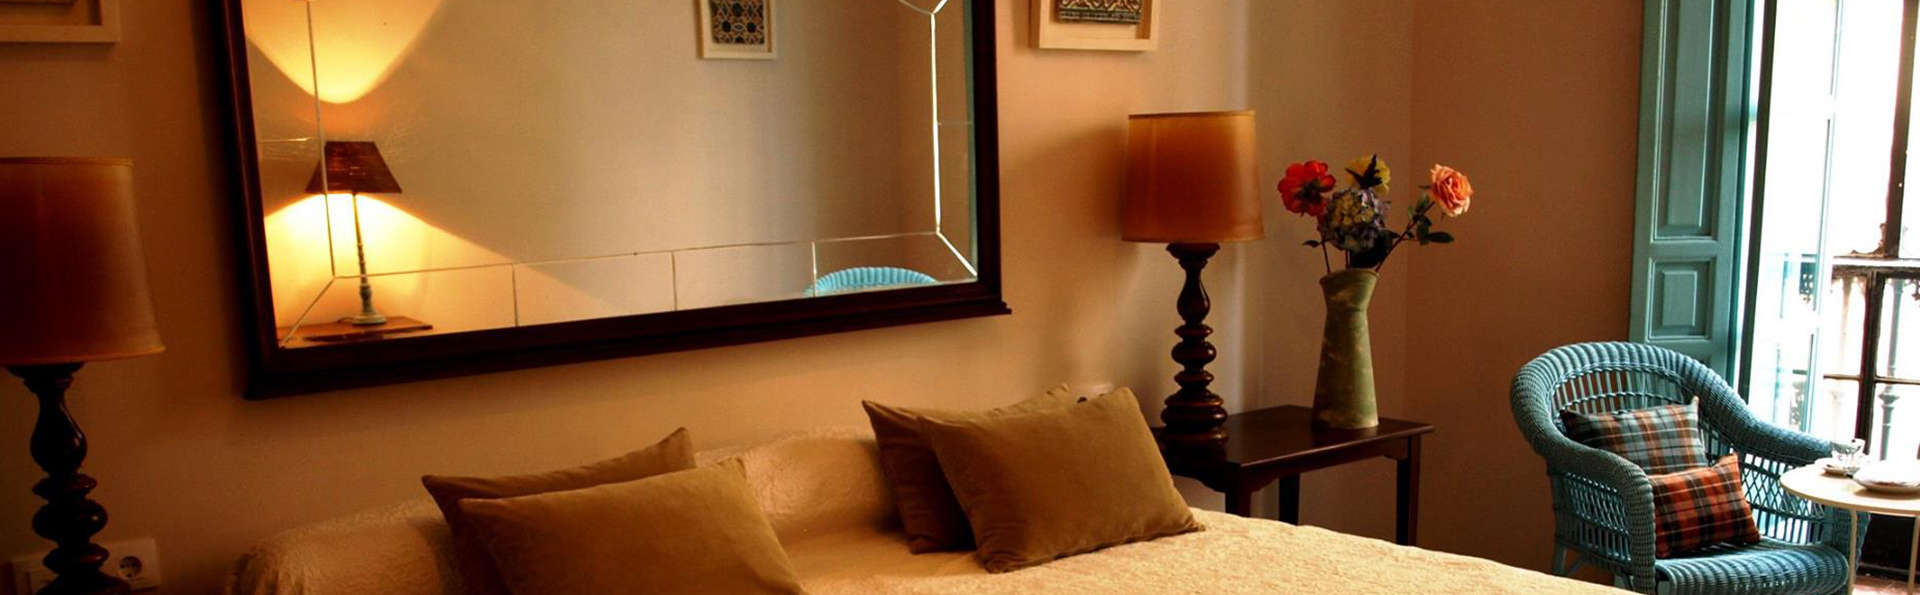 Hotel Boutique Casa de Colón - EDIT_room5.jpg